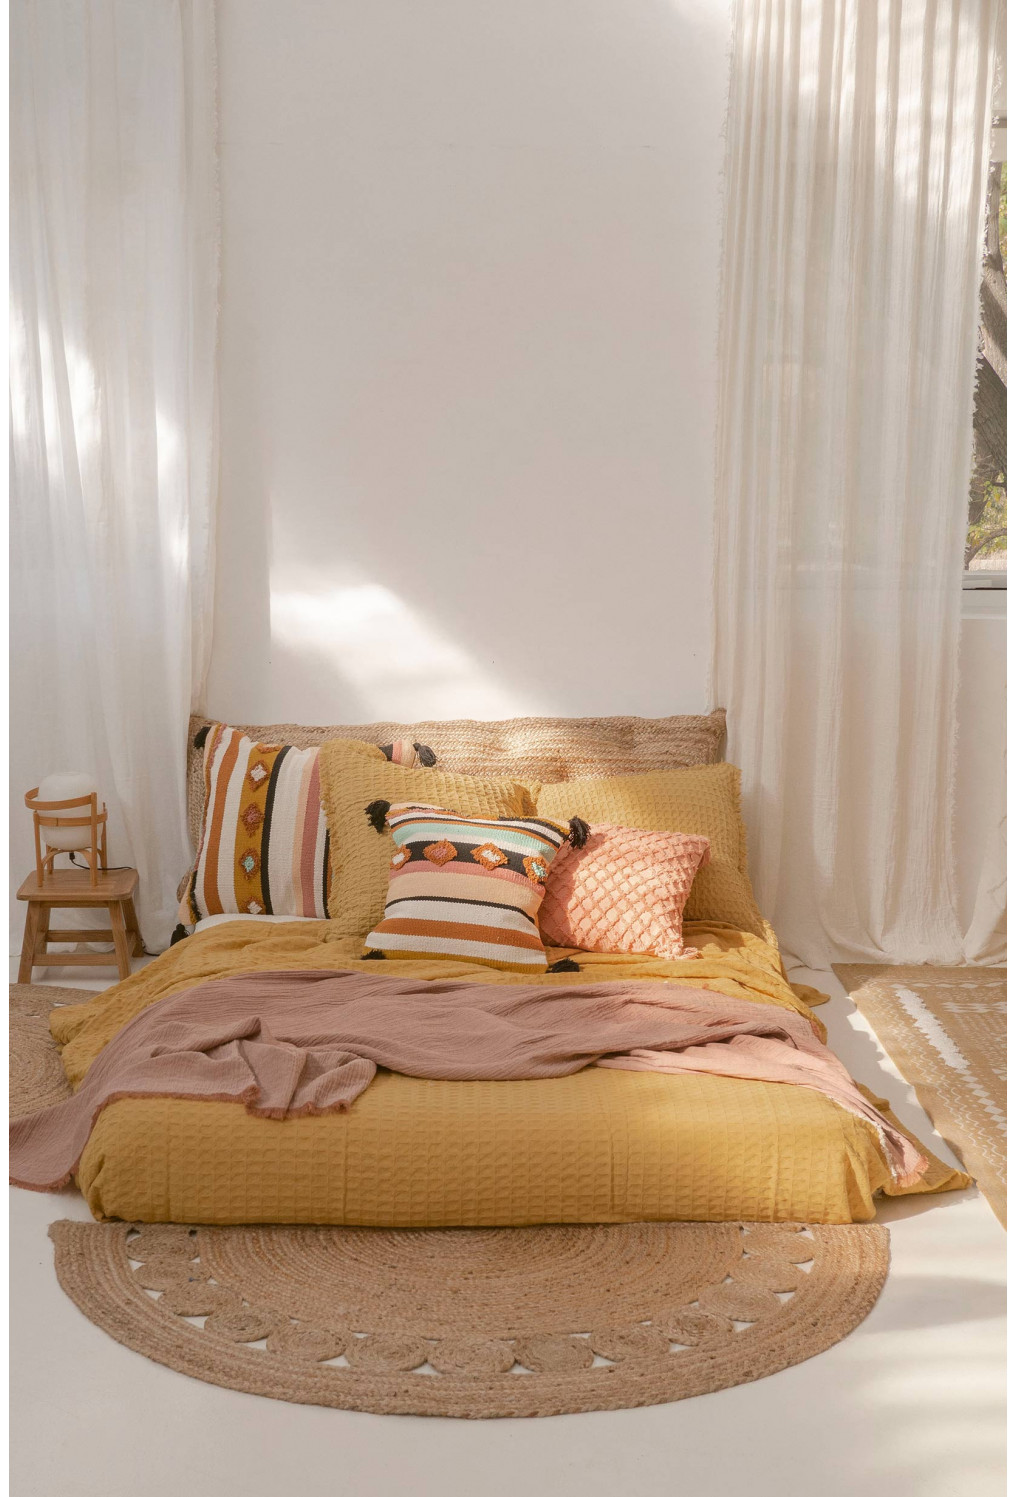 Bedspread PANAL yellow